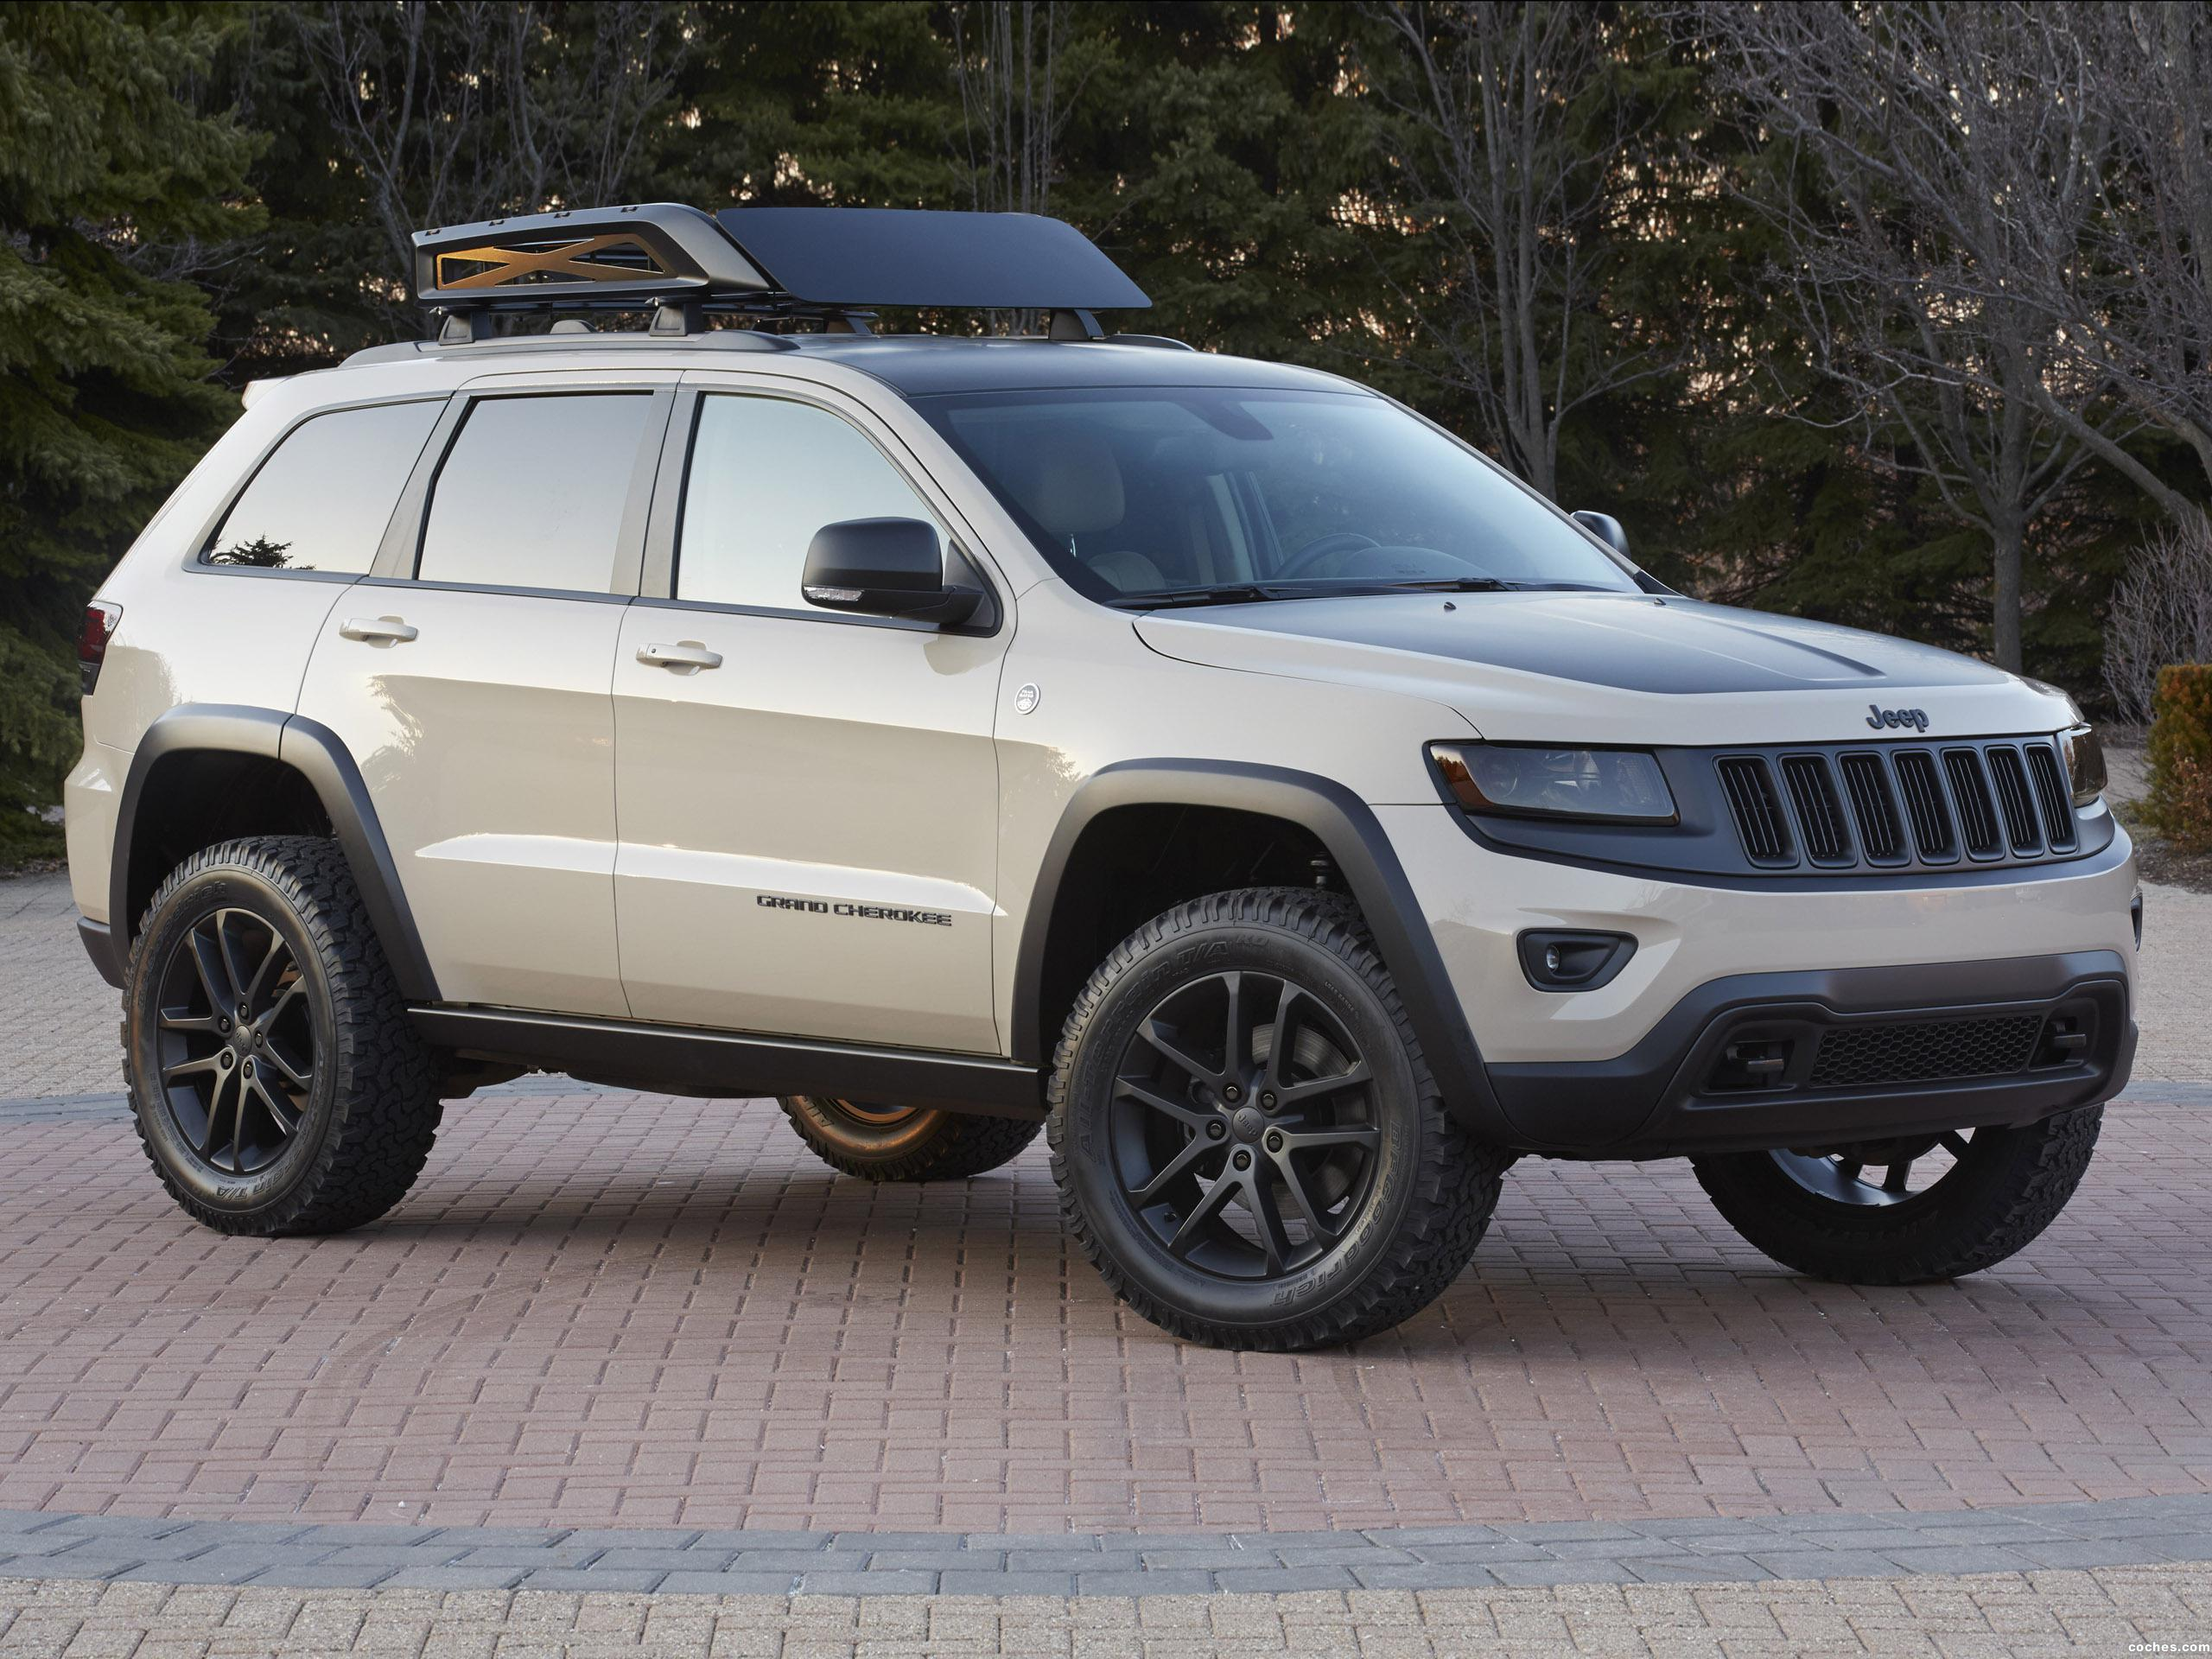 Foto 0 de Jeep Grand Cherokee Trail Warrior Concept 2014